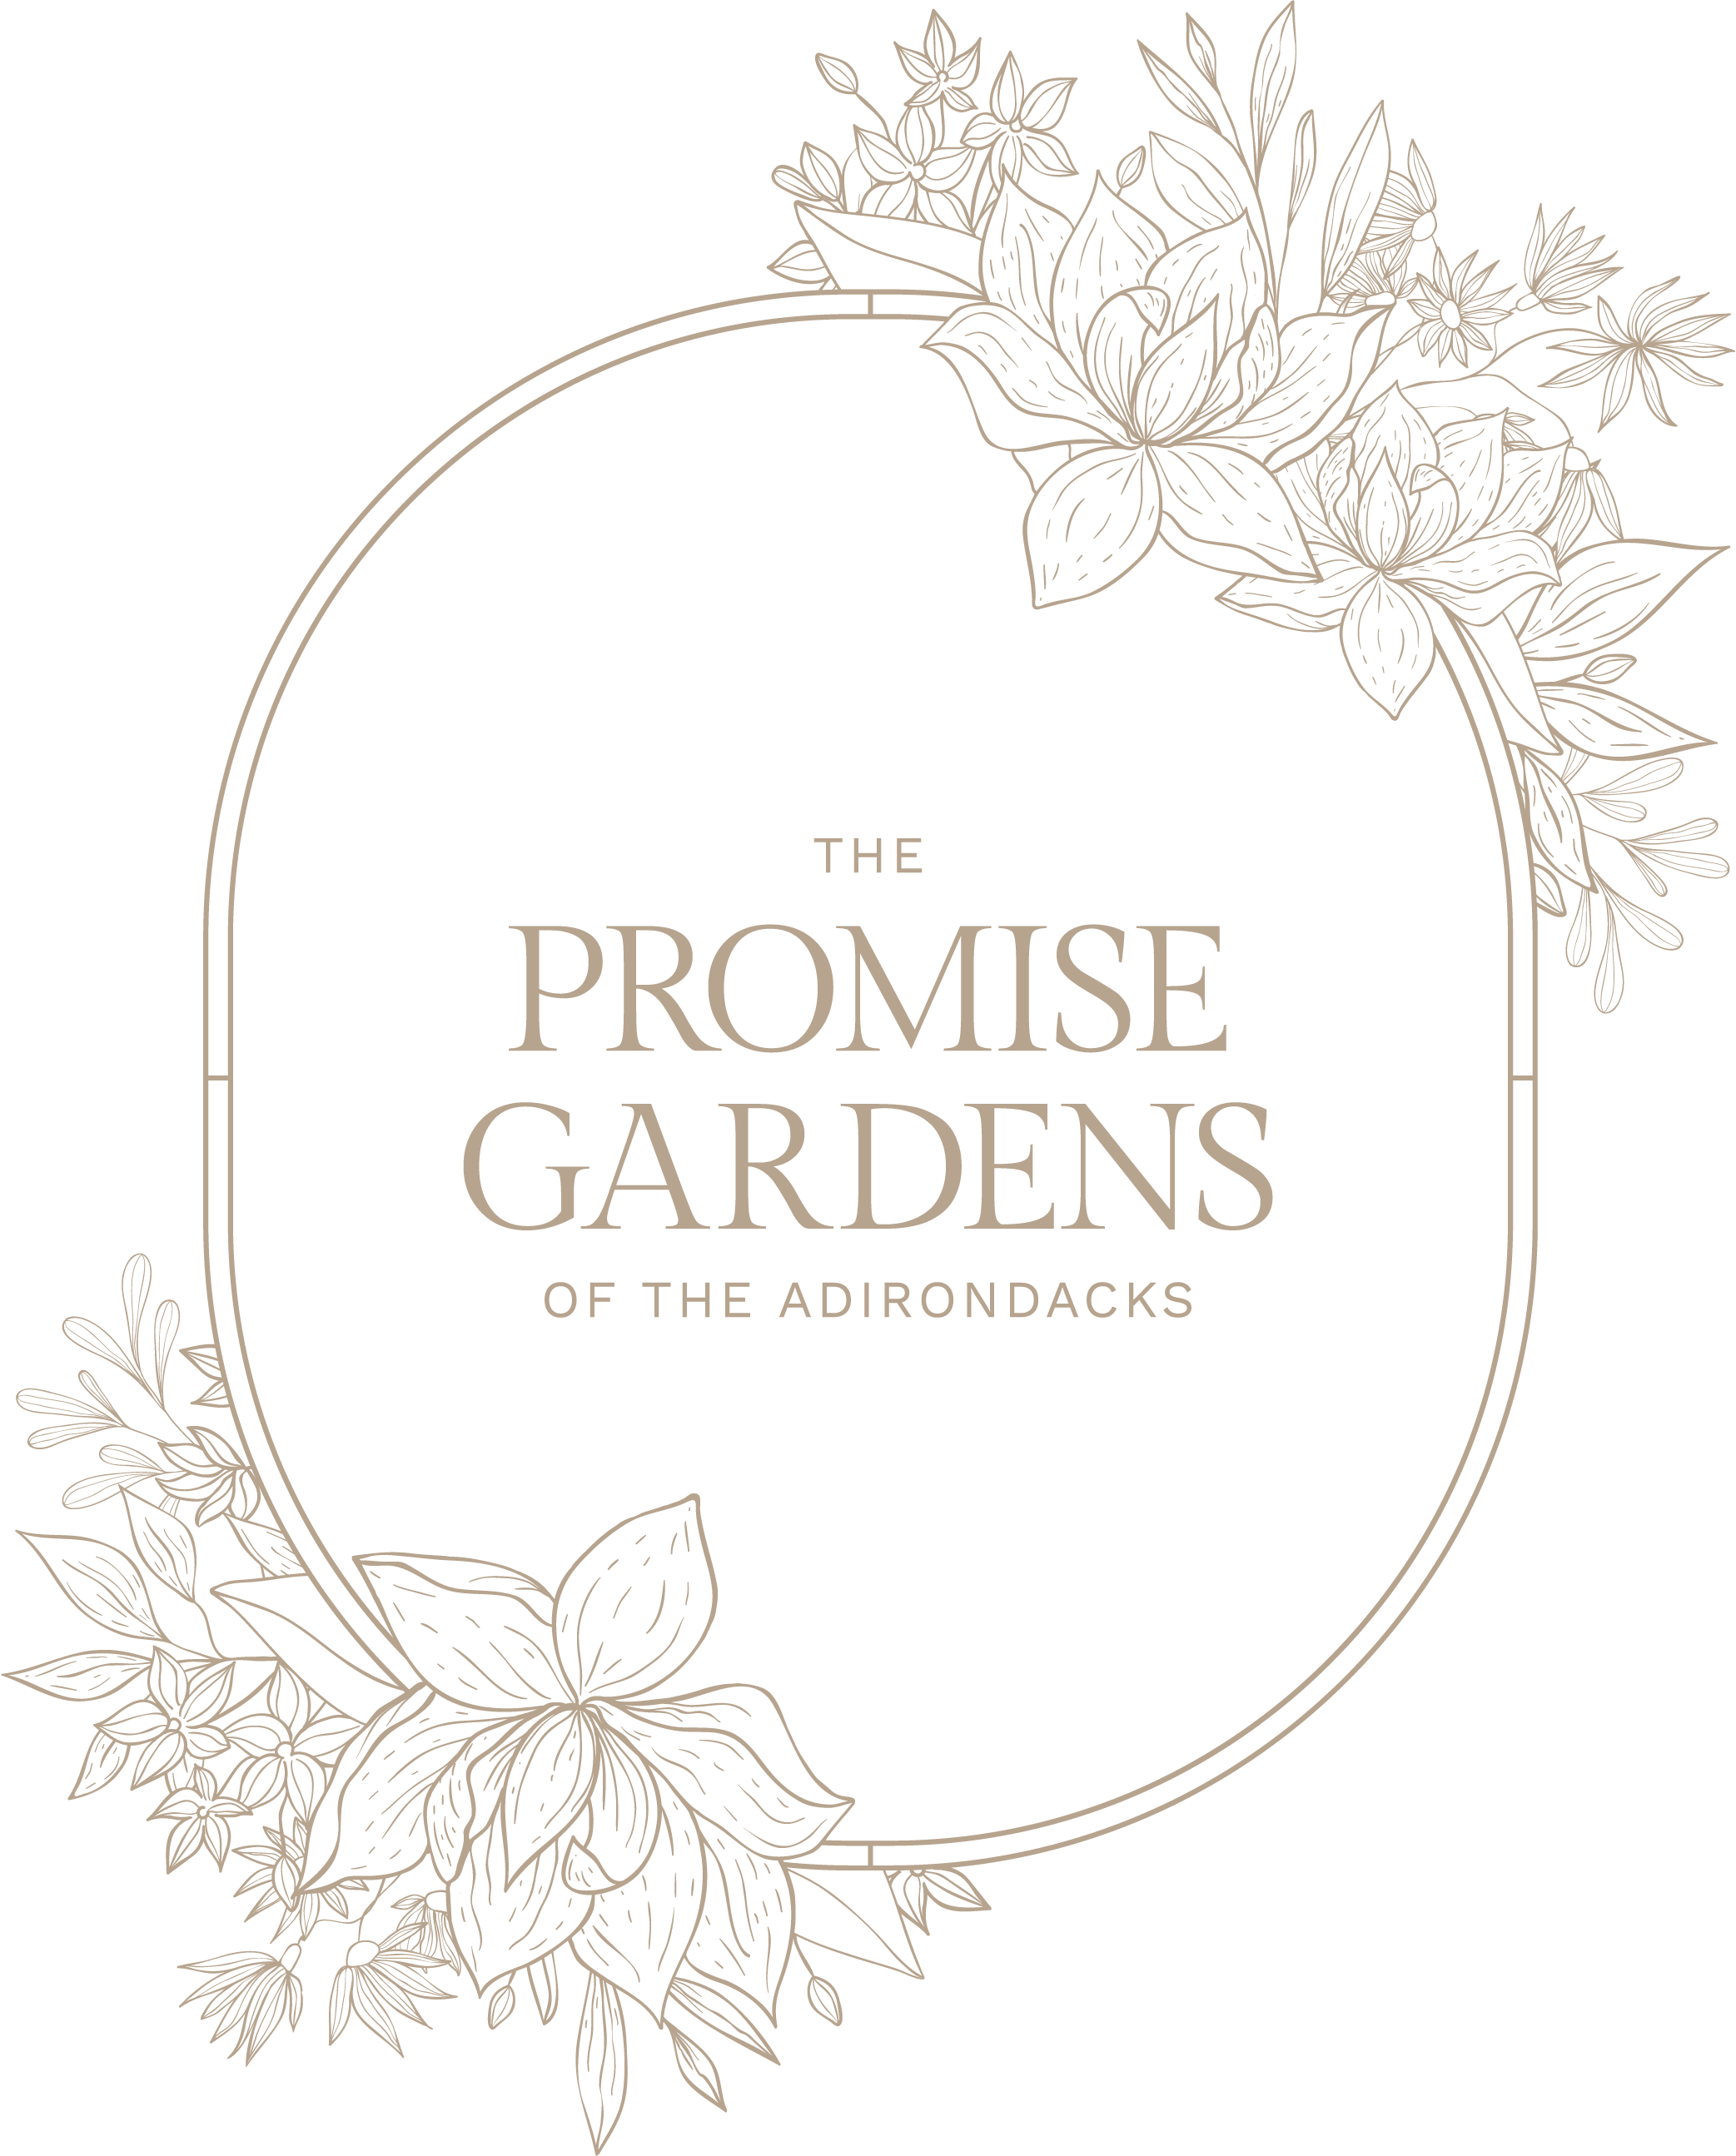 The Promise Gardens of the Adirondacks